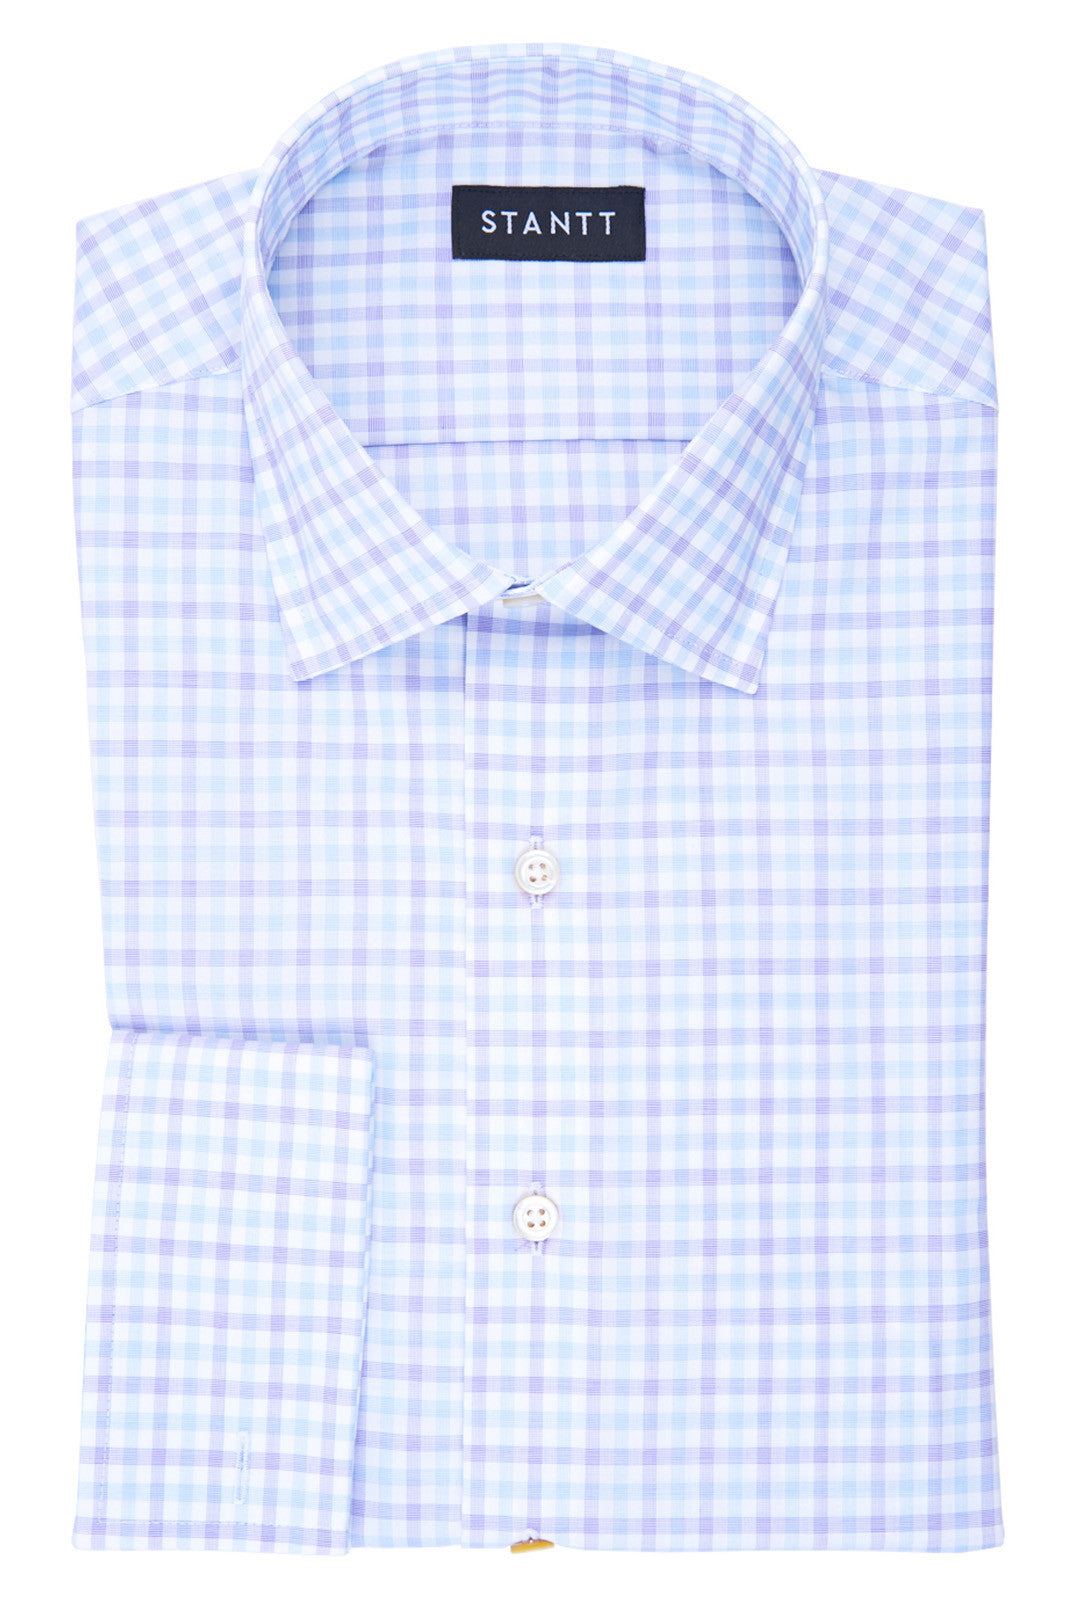 Wrinkle-Resistant Purple Cross Weave Tattersall: Semi-Spread Collar, Barrel Cuff